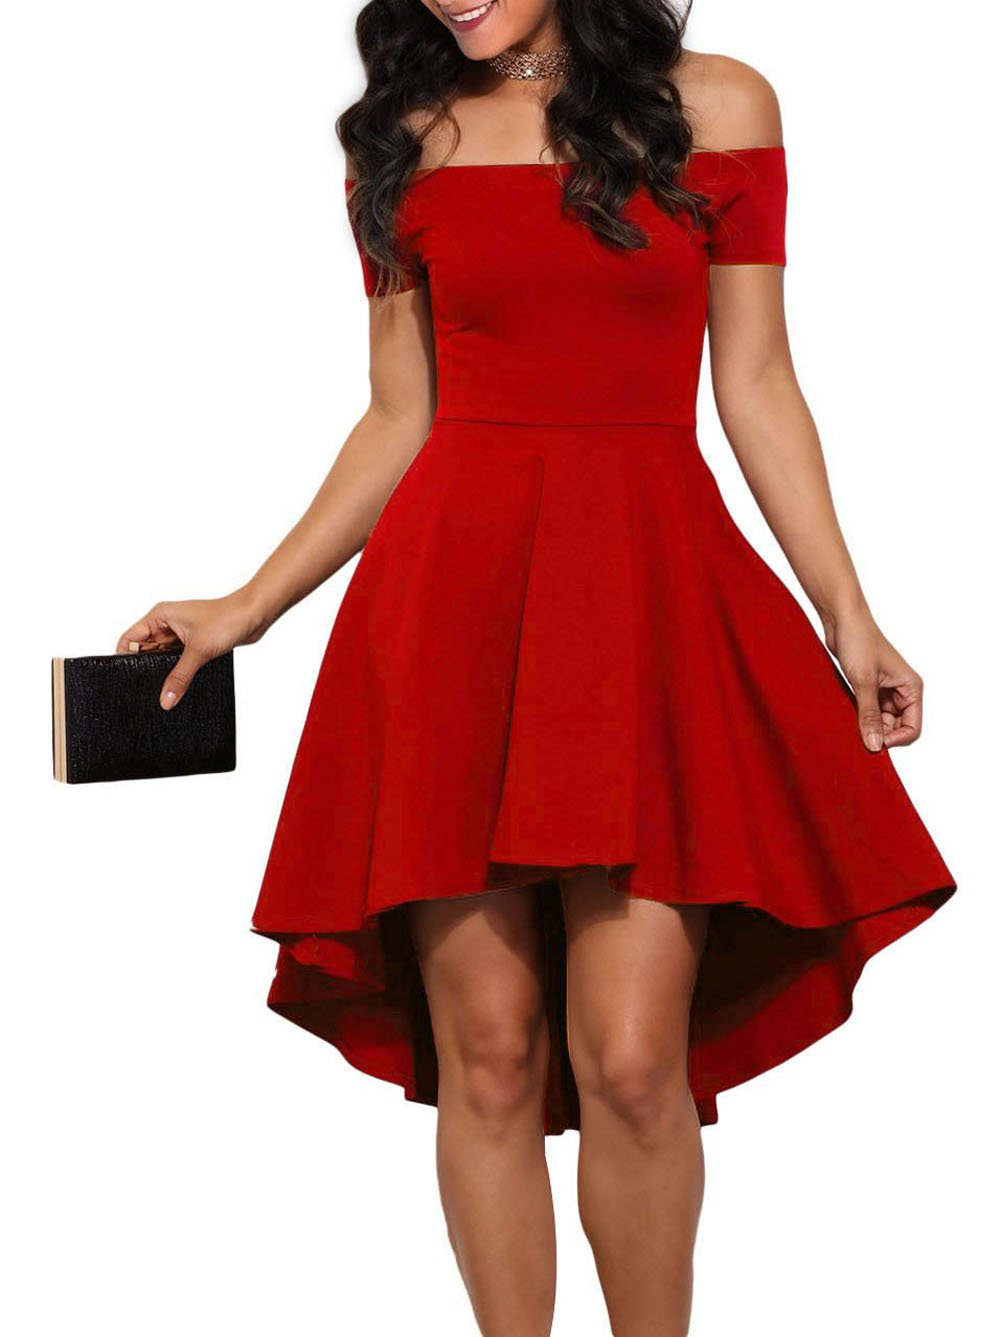 LOSRLY Womens Off Shoulder Semi Formal Short Evening Dress A Line Plus Size Red XL 14 16